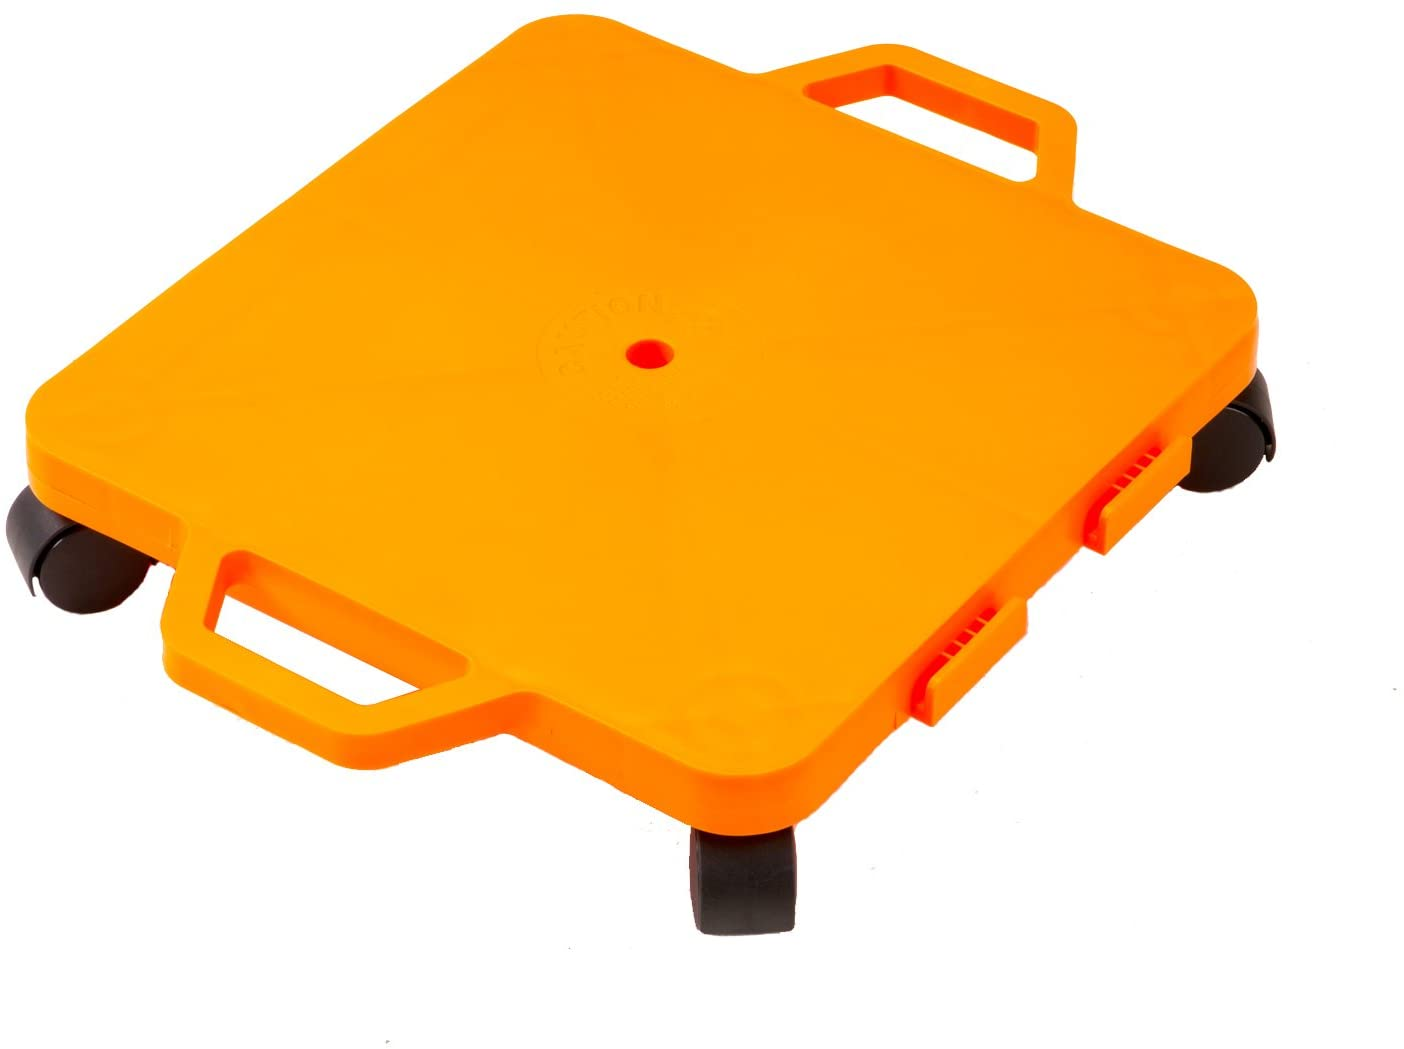 Cosom Scooter Board, 16 Inch Children's Sit & Scoot Board with 2 Inch Non-Marring Nylon Casters & Safety Guards for Physical Education Class